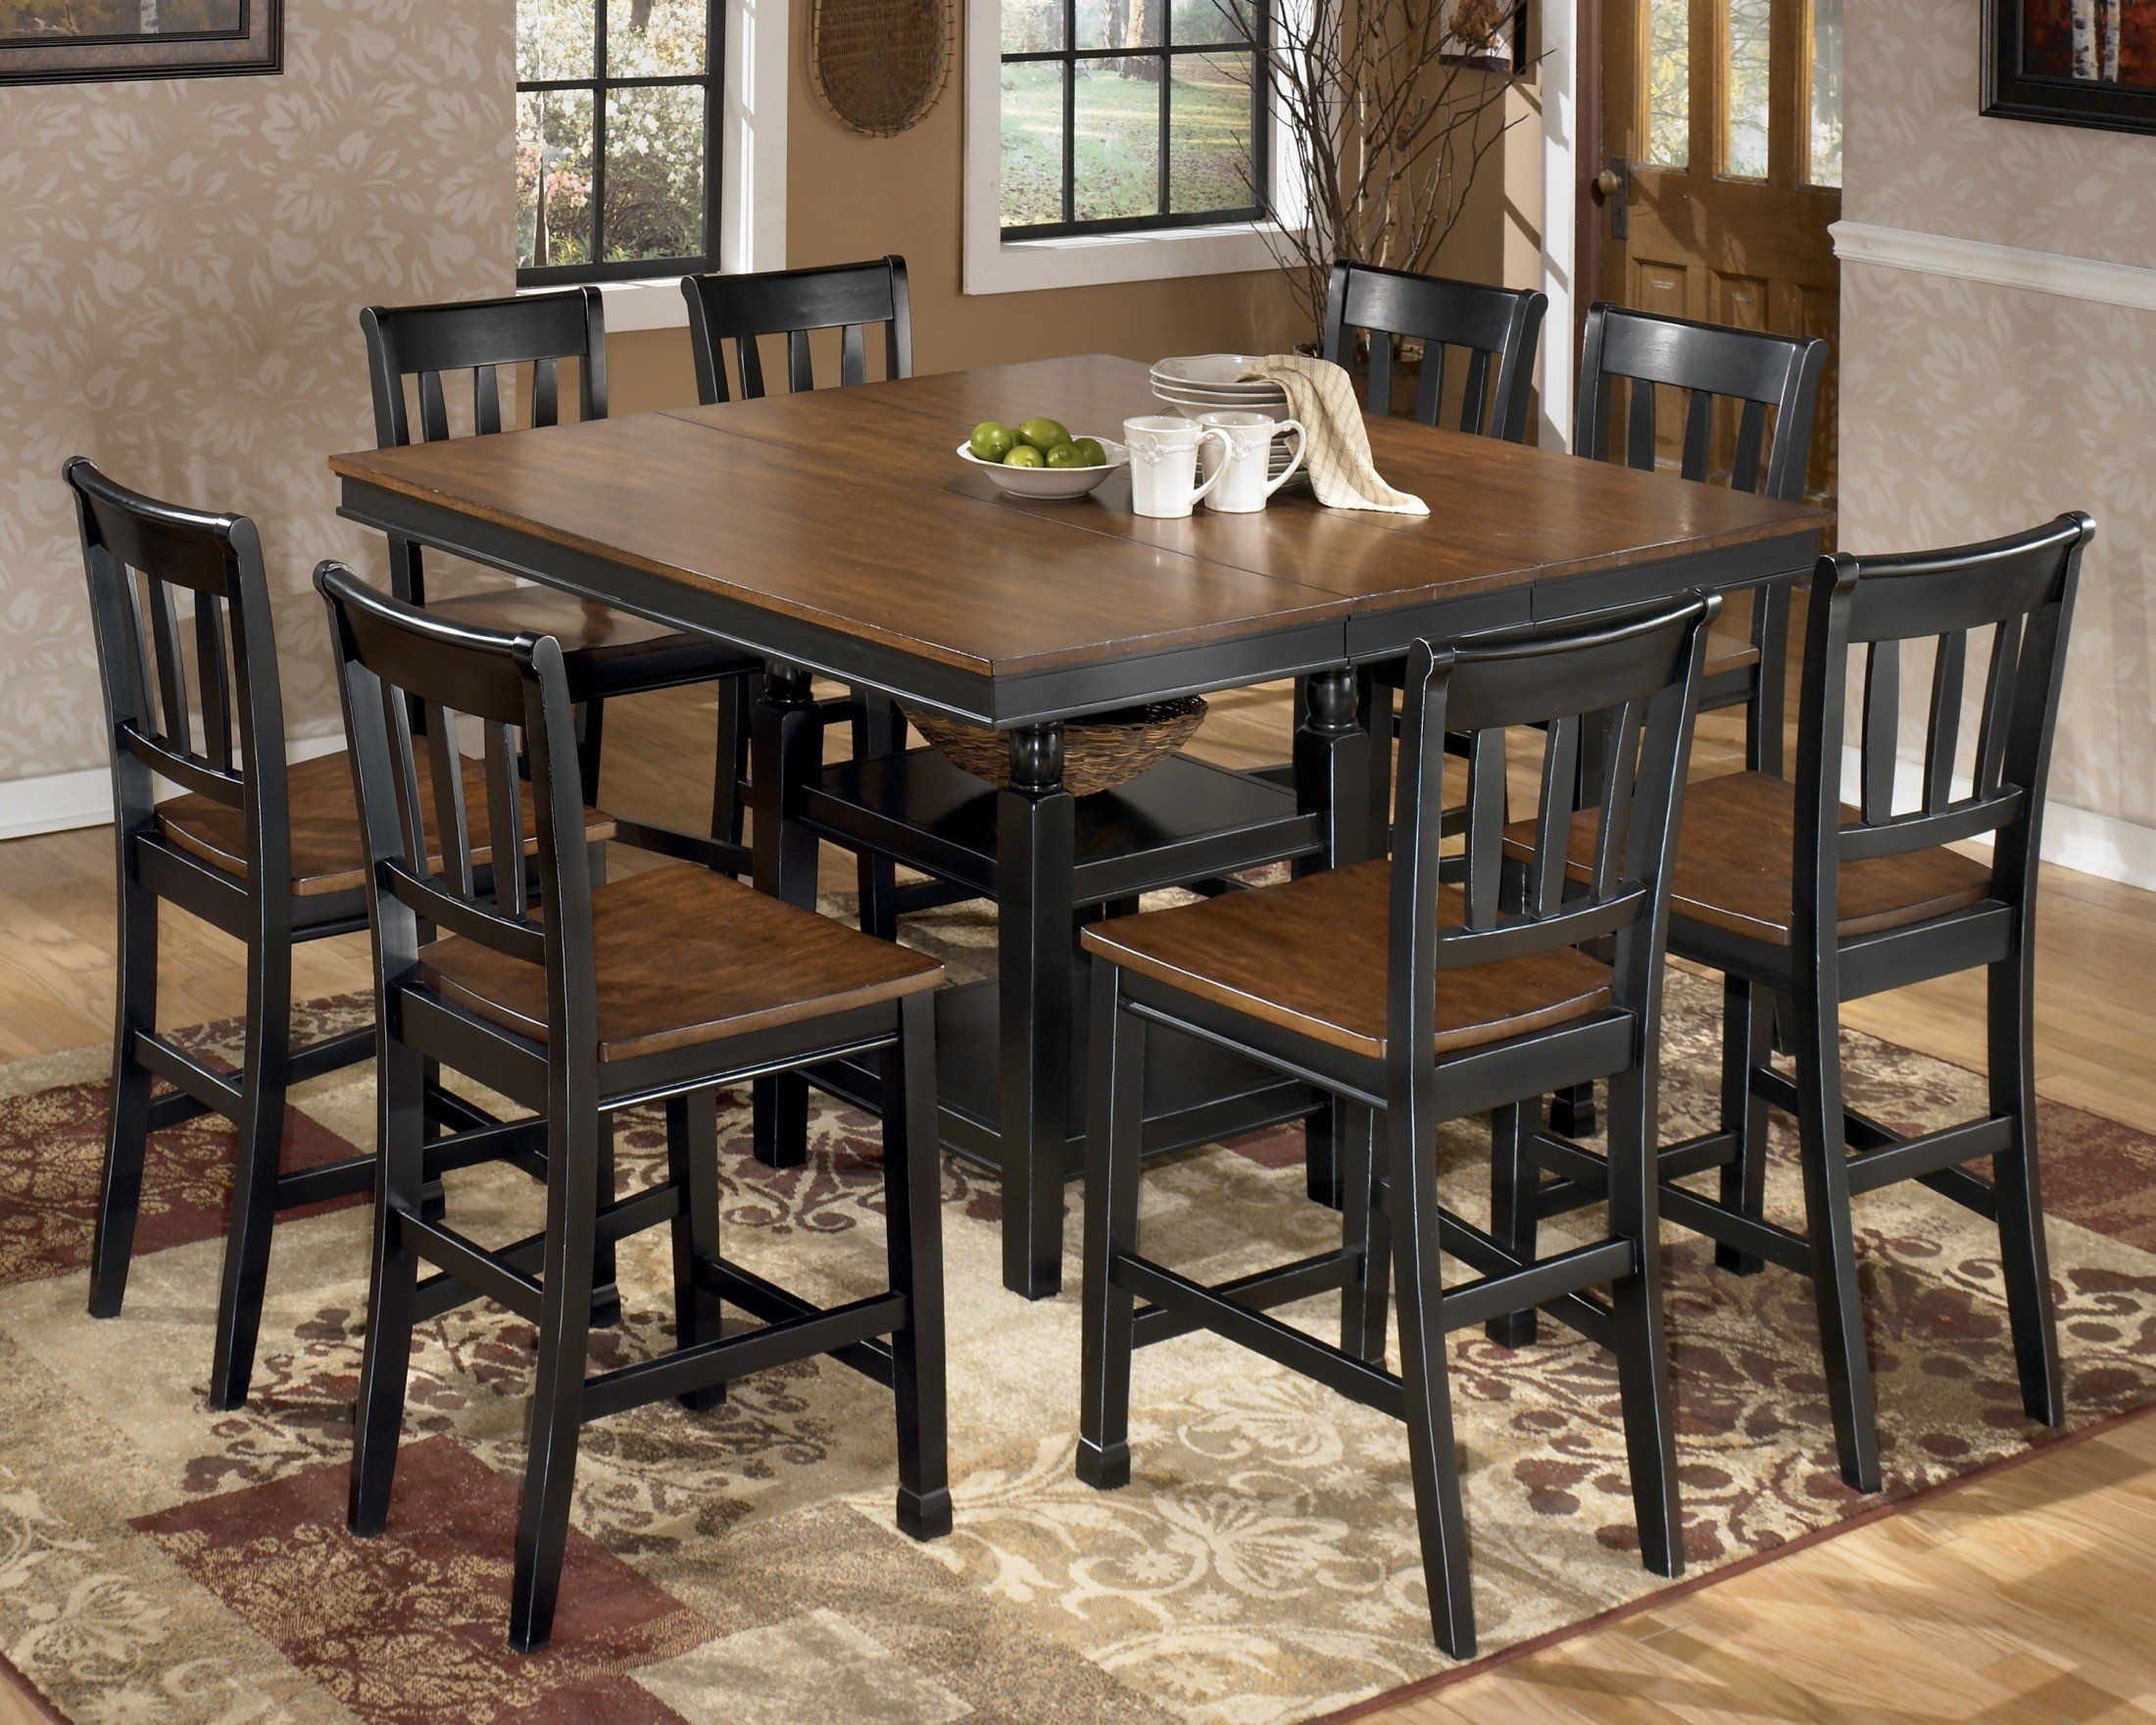 owingsville square counter height extendable dining room set from